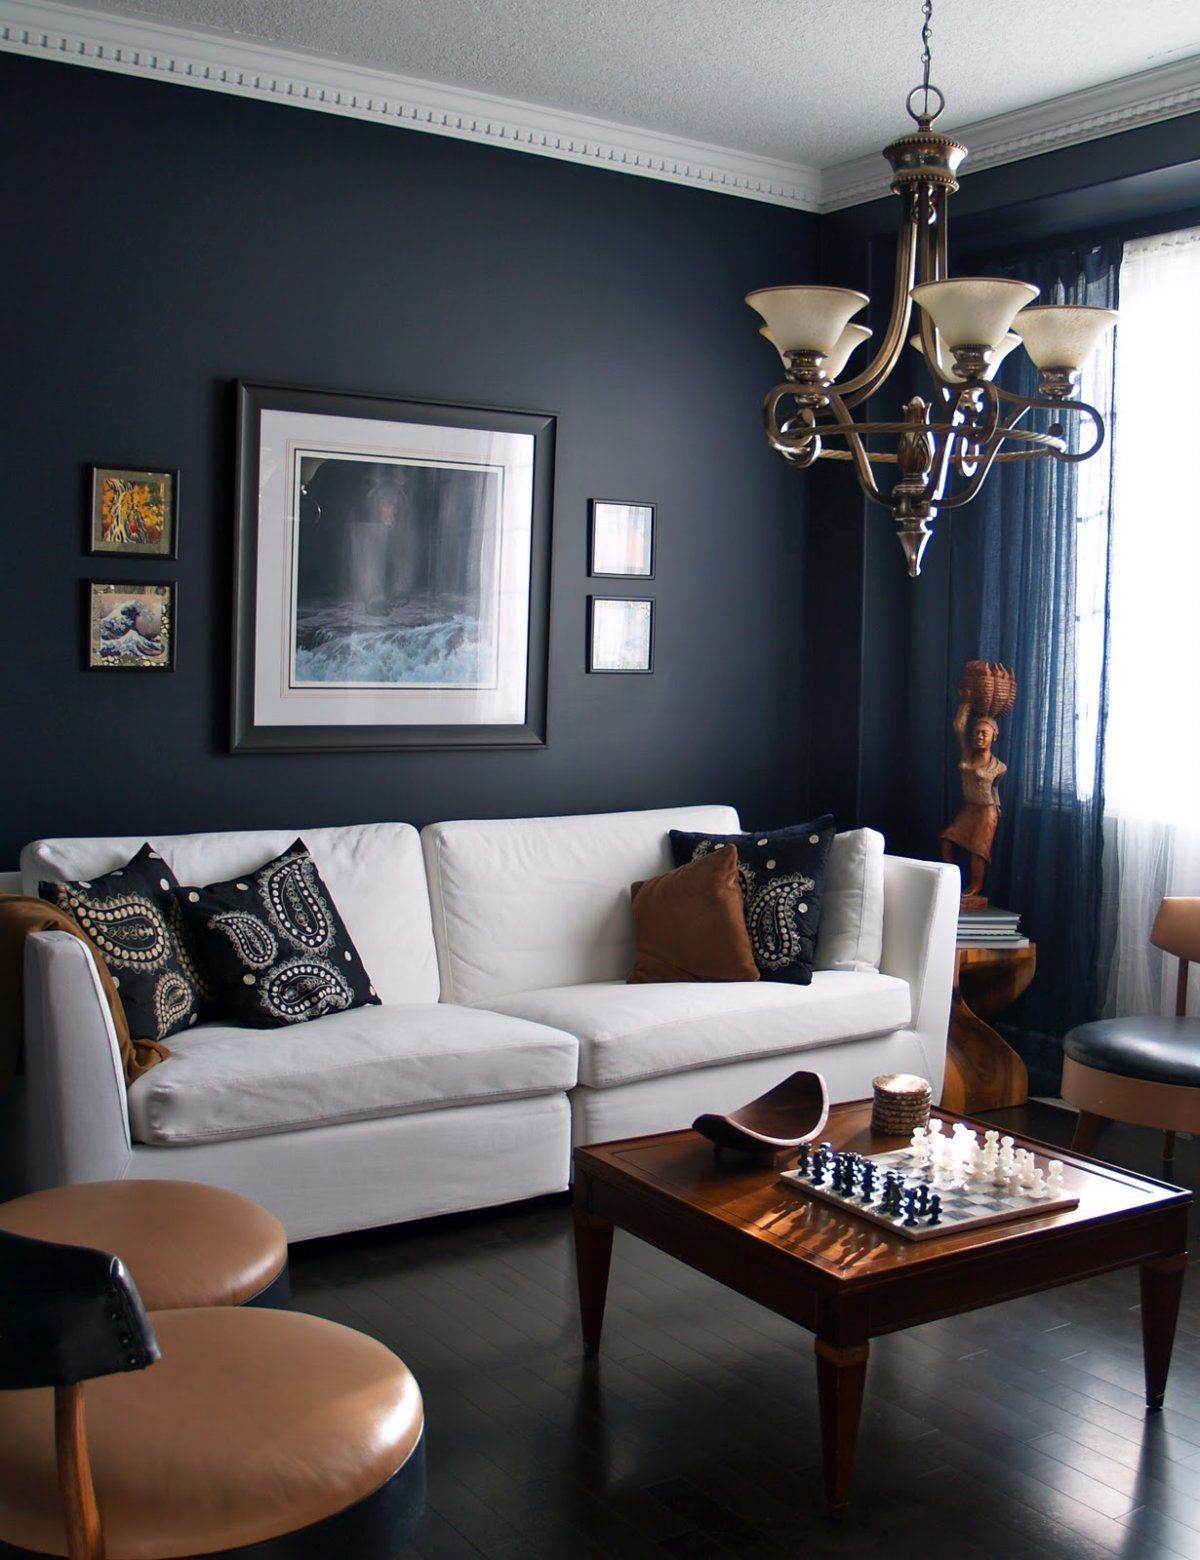 Modular Furniture Living Room 15 Beautiful Dark Blue Wall Design Ideas Classic Living Room